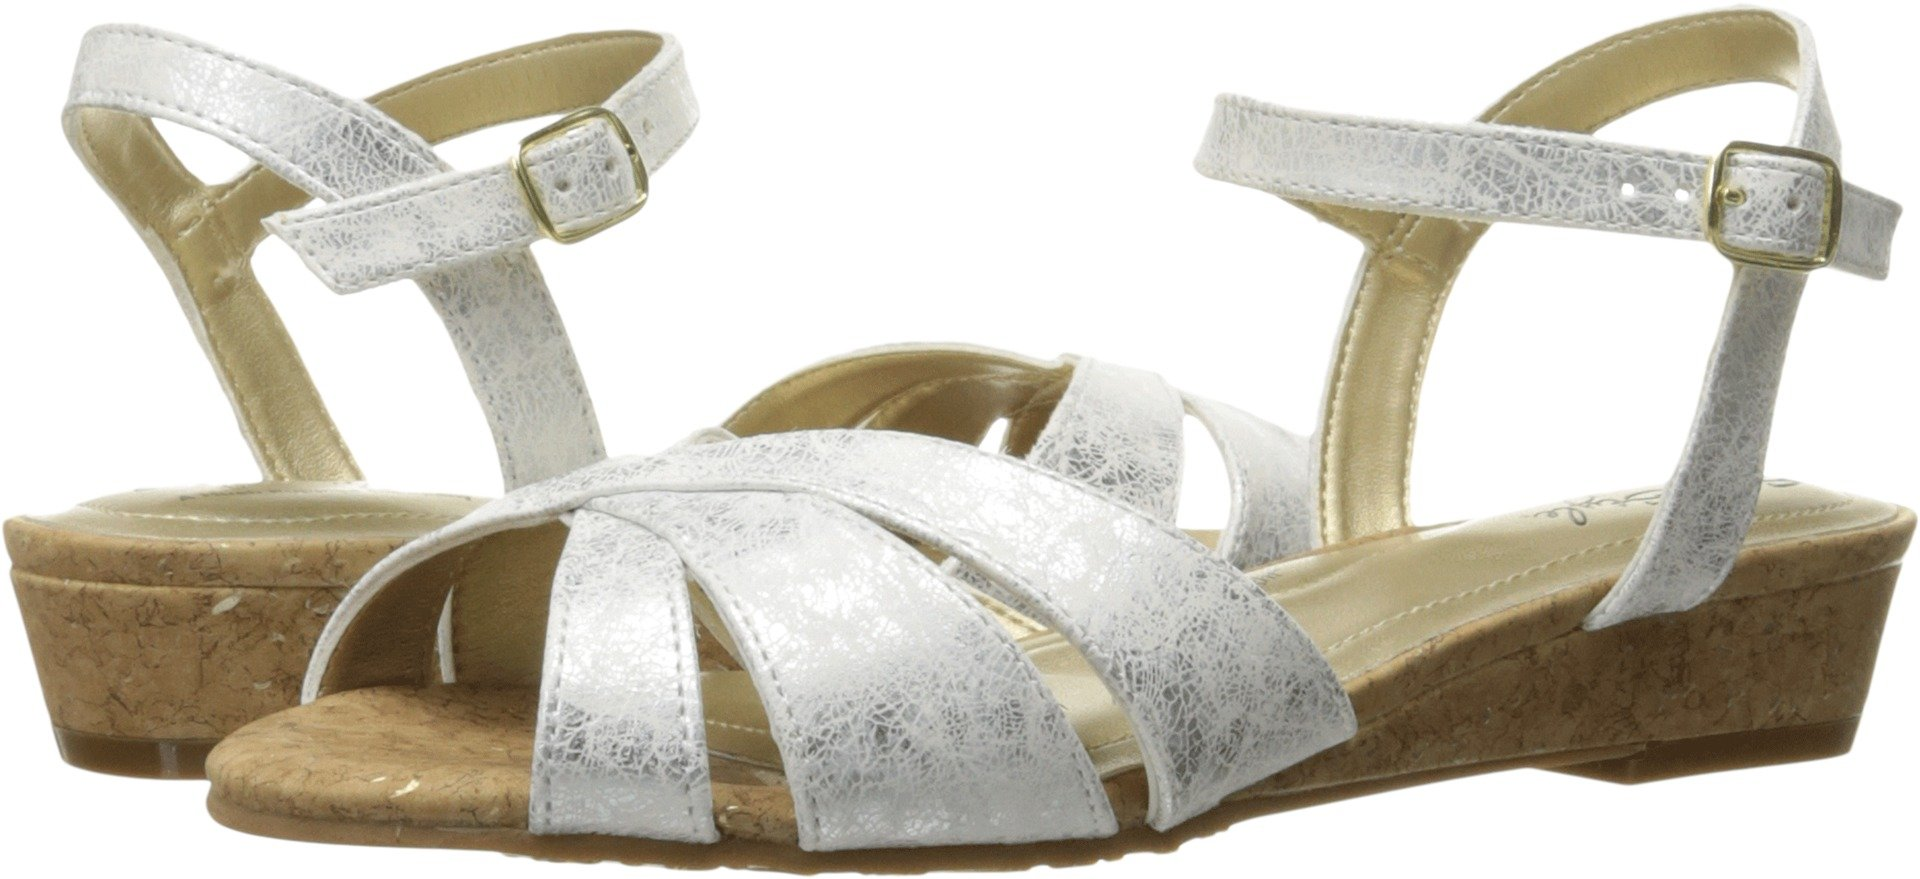 Soft Style by Hush Puppies Women's Midnite Wedge Sandal, White, 9.5 M US